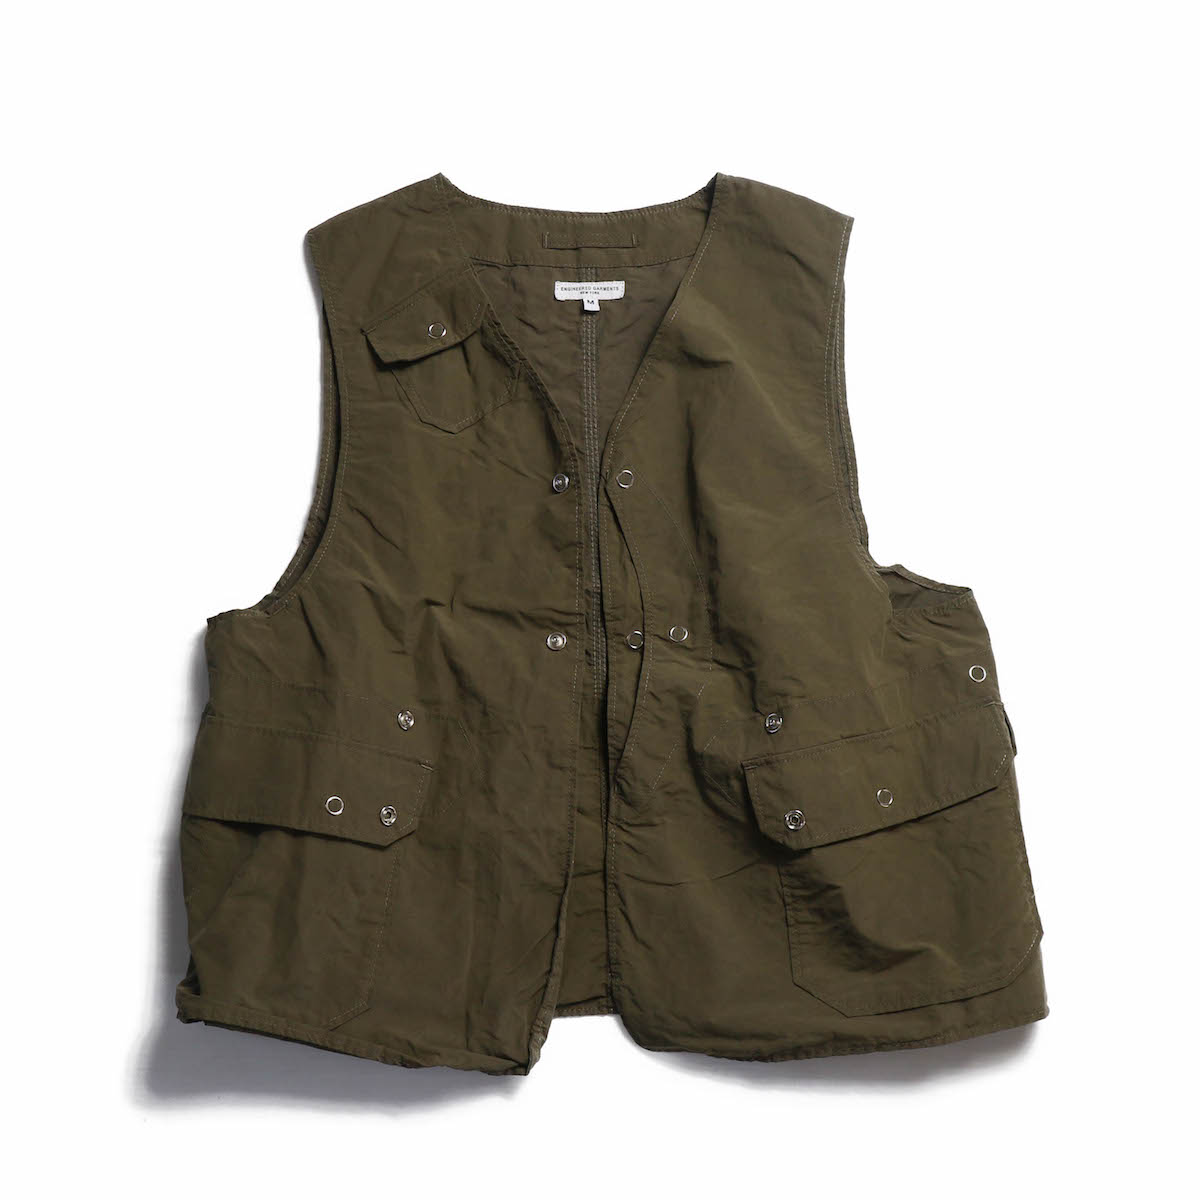 Engineered Garments / Upland Vest -4.5oz Waxed Coton